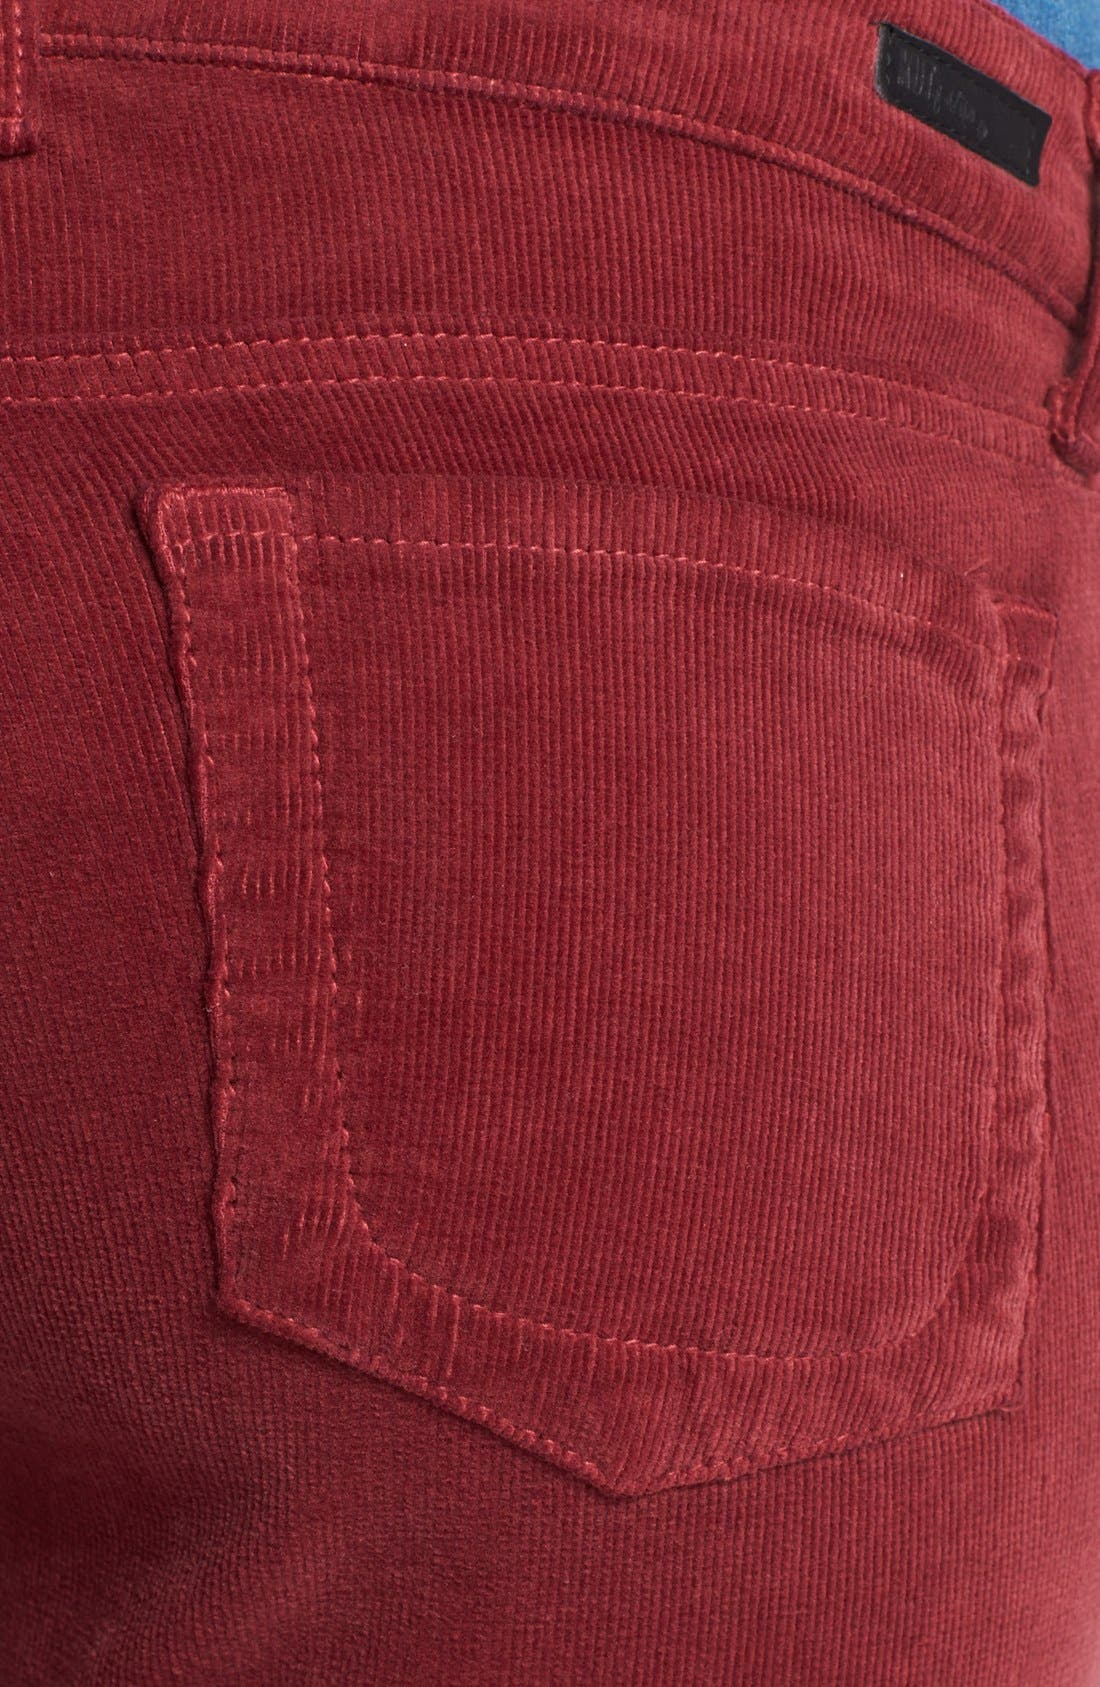 Baby Bootcut Corduroy Jeans,                             Alternate thumbnail 74, color,